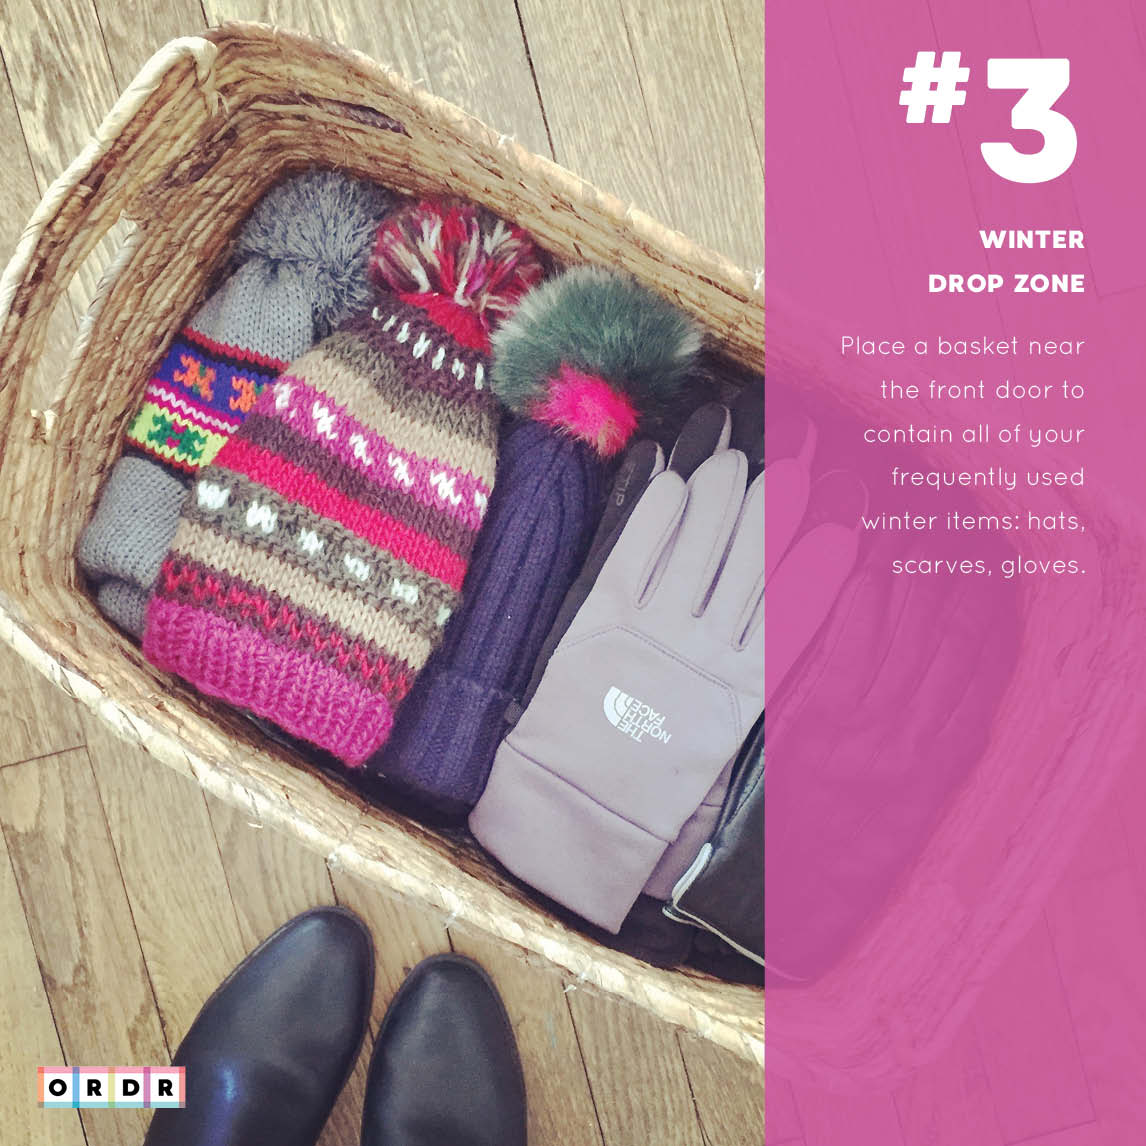 Basket of winter clothes.